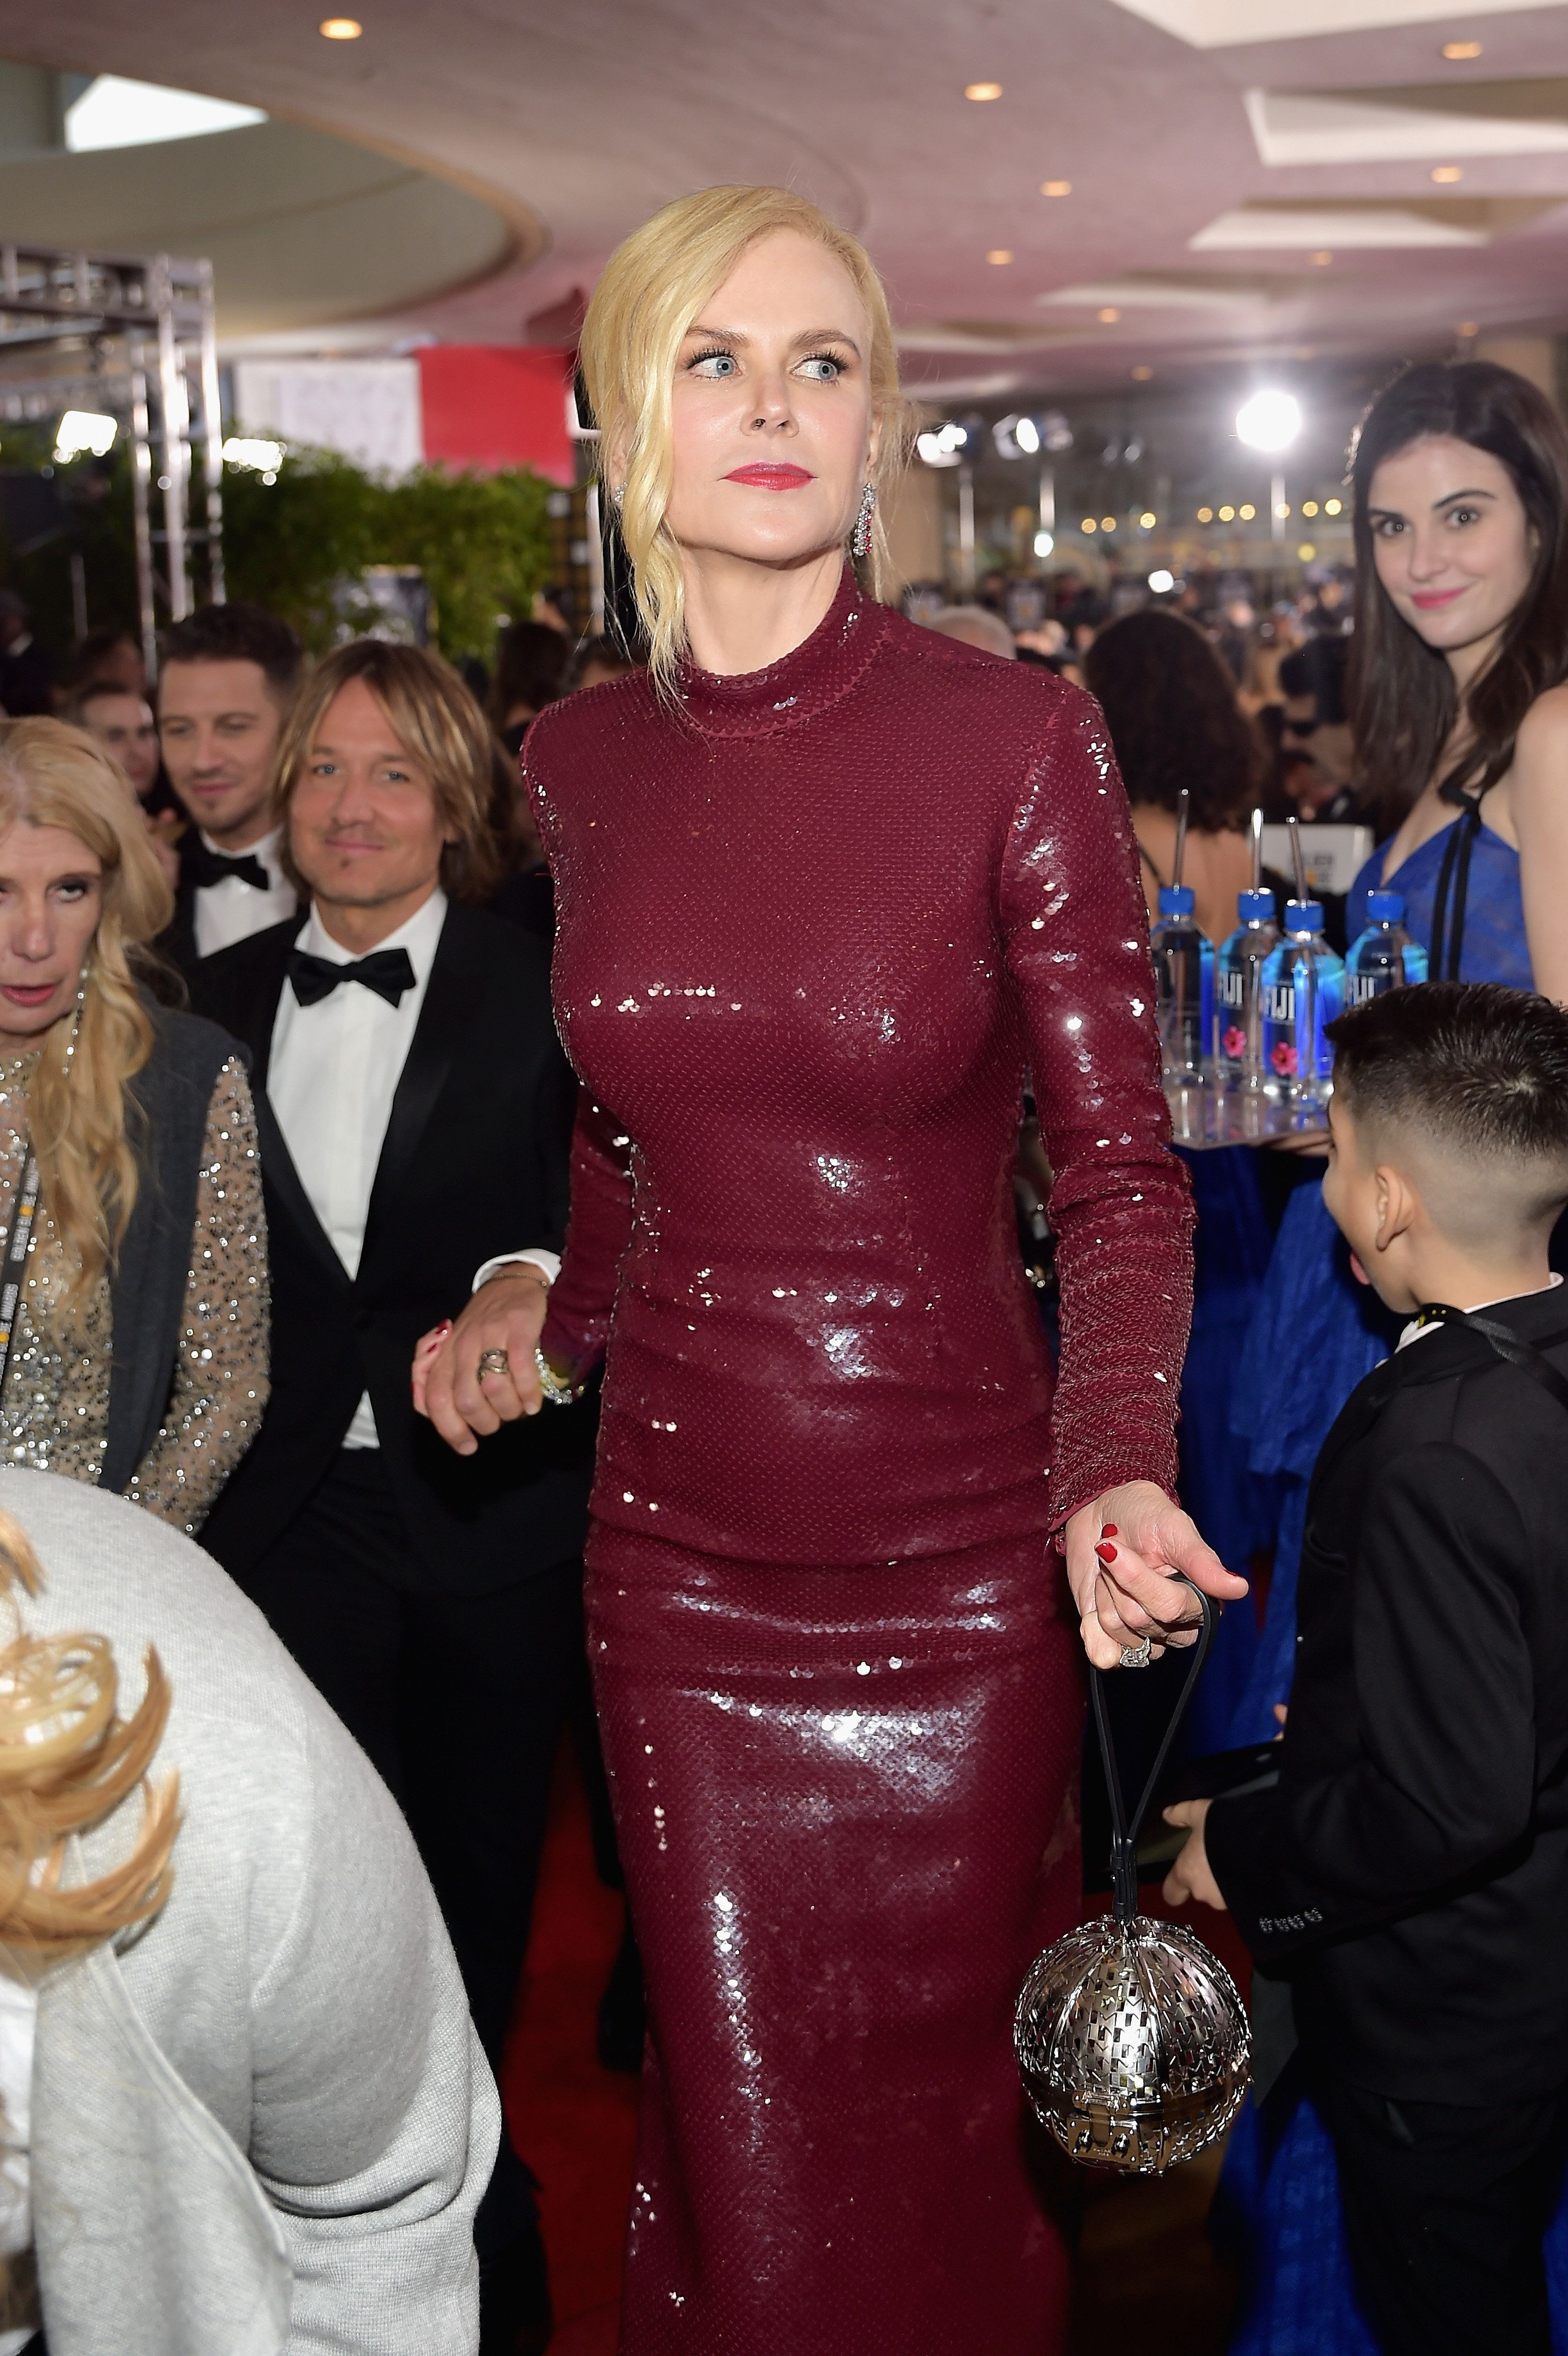 Kelleth seen in the background of this shot of Nicole Kidman at the Golden